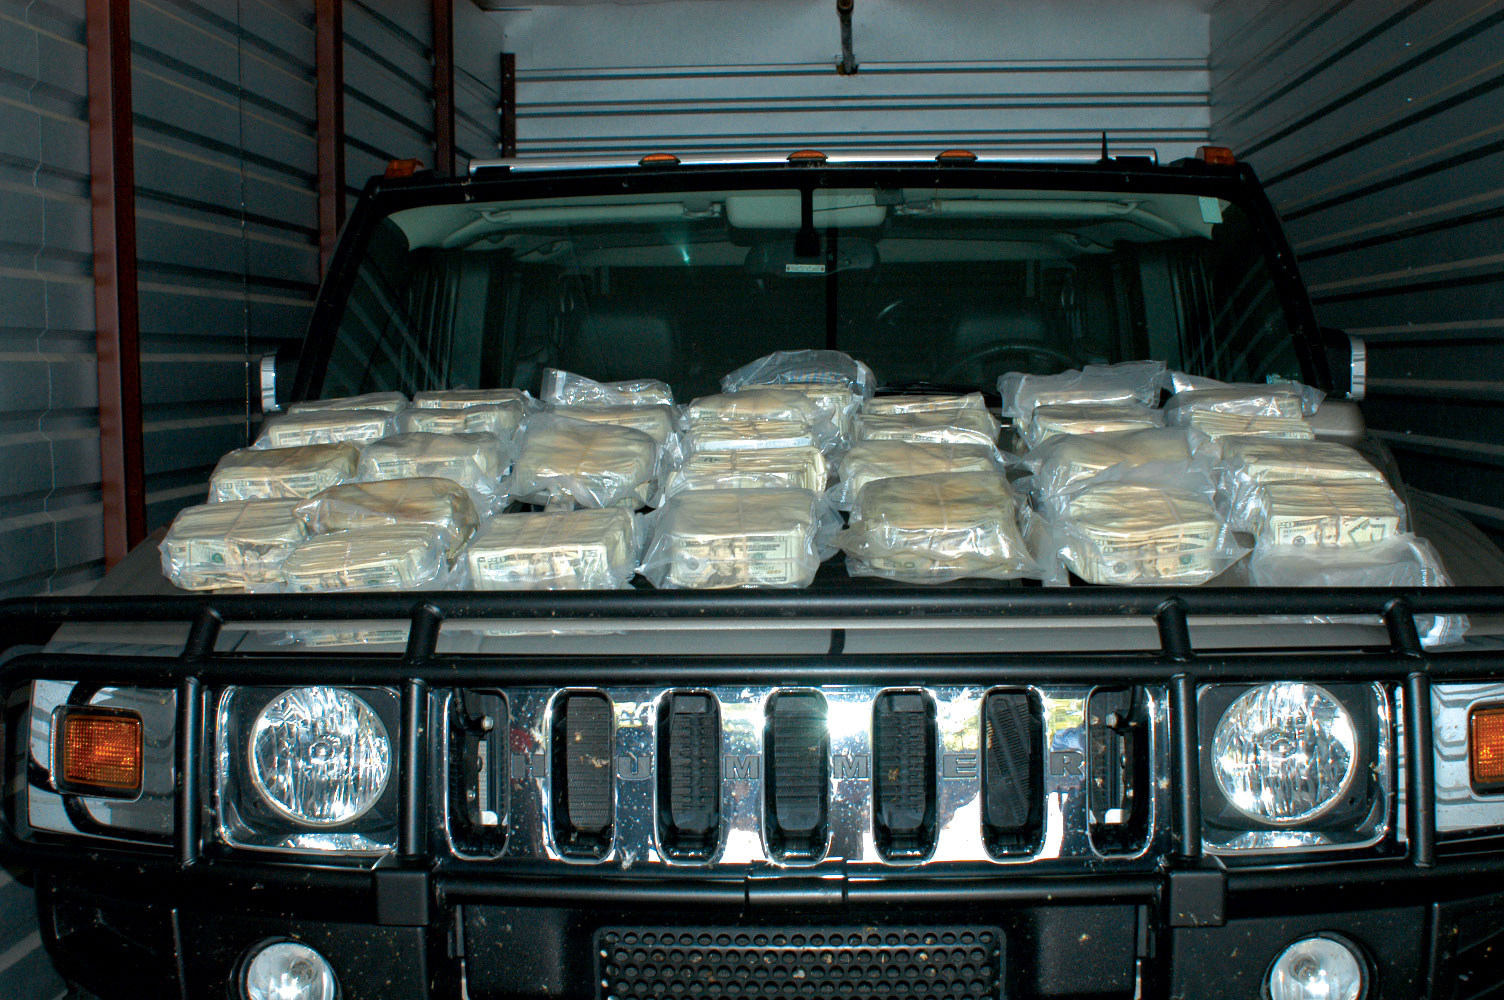 Authorities found hundreds of thousands of dollars hidden inside a Hummer that was driven to Atlanta and locked in a storage unit.